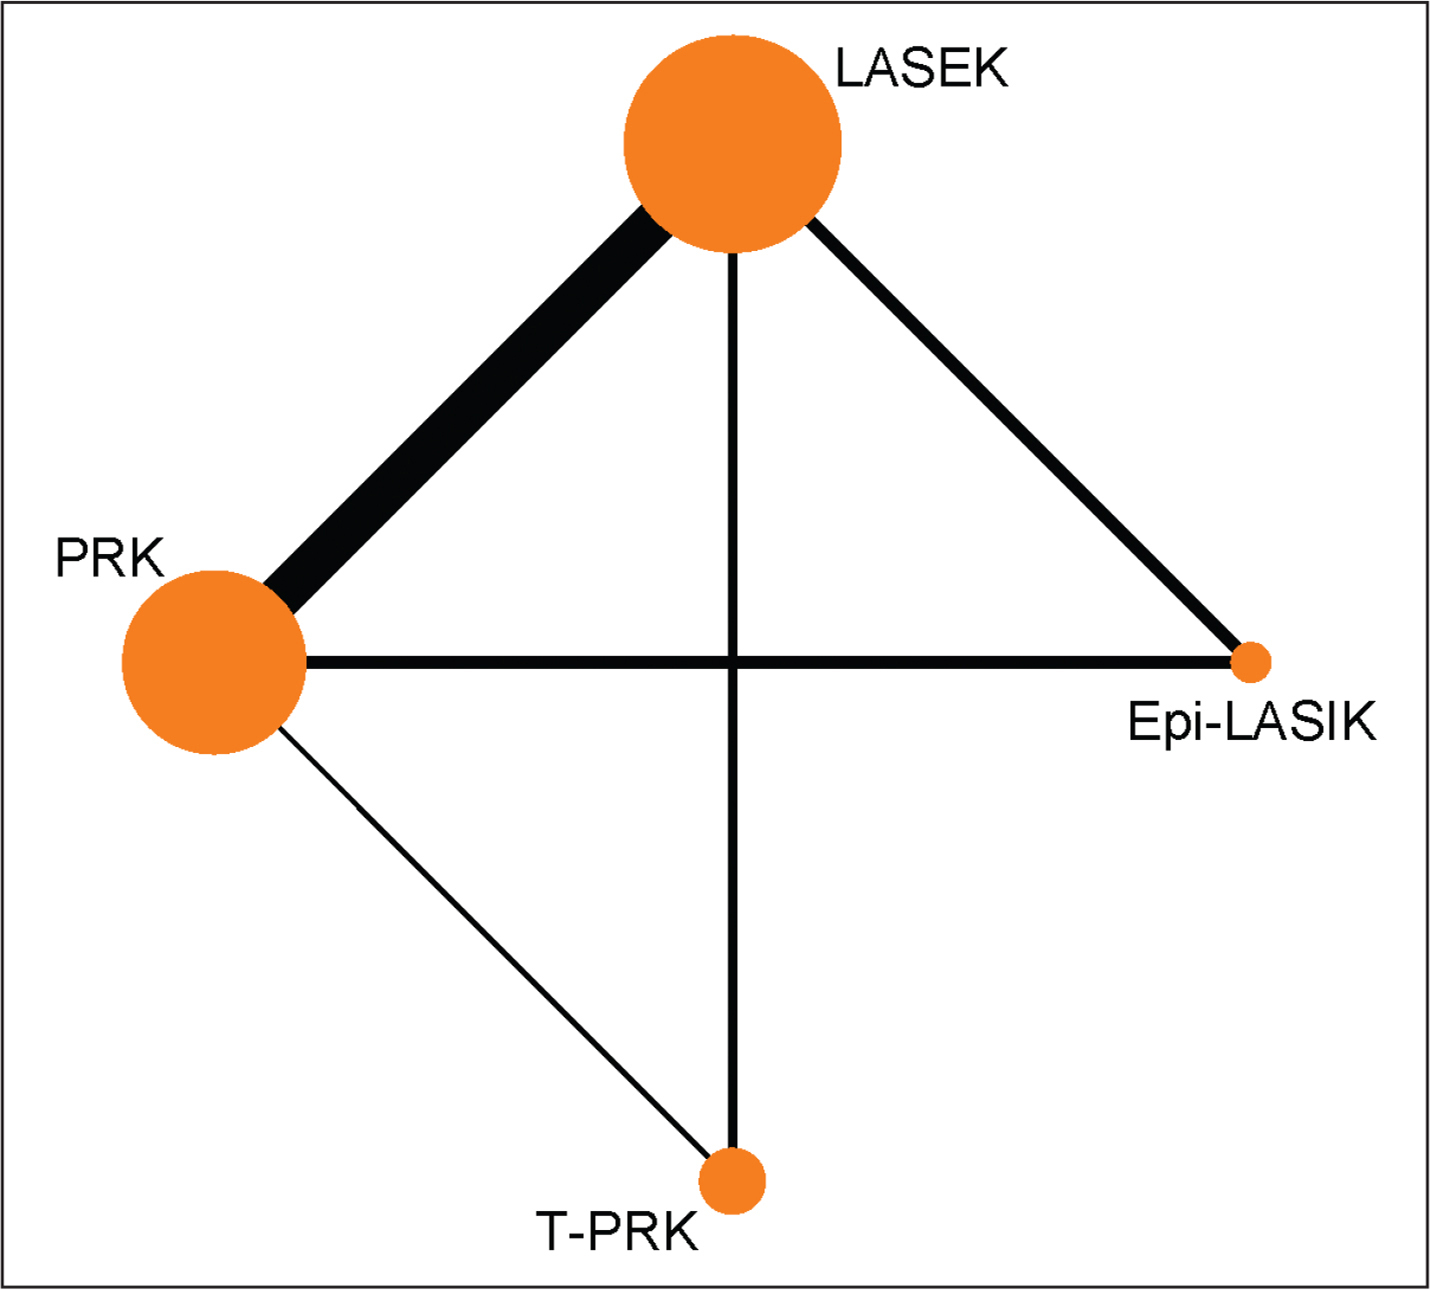 Network of direct comparison for the corneal refractive surgery of myopia. Each node represents one treatment. The size of the node is proportional to the number of participants randomized to that treatment. The edges represent direct comparisons, and the width of the edge is proportional to the number of trials. epi-LASIK = epithelial laser in situ keratomileusis; LASEK = laser epithelial keratomileusis; PRK = photorefractive keratectomy; T-PRK = transepithelial photorefractive keratectomy